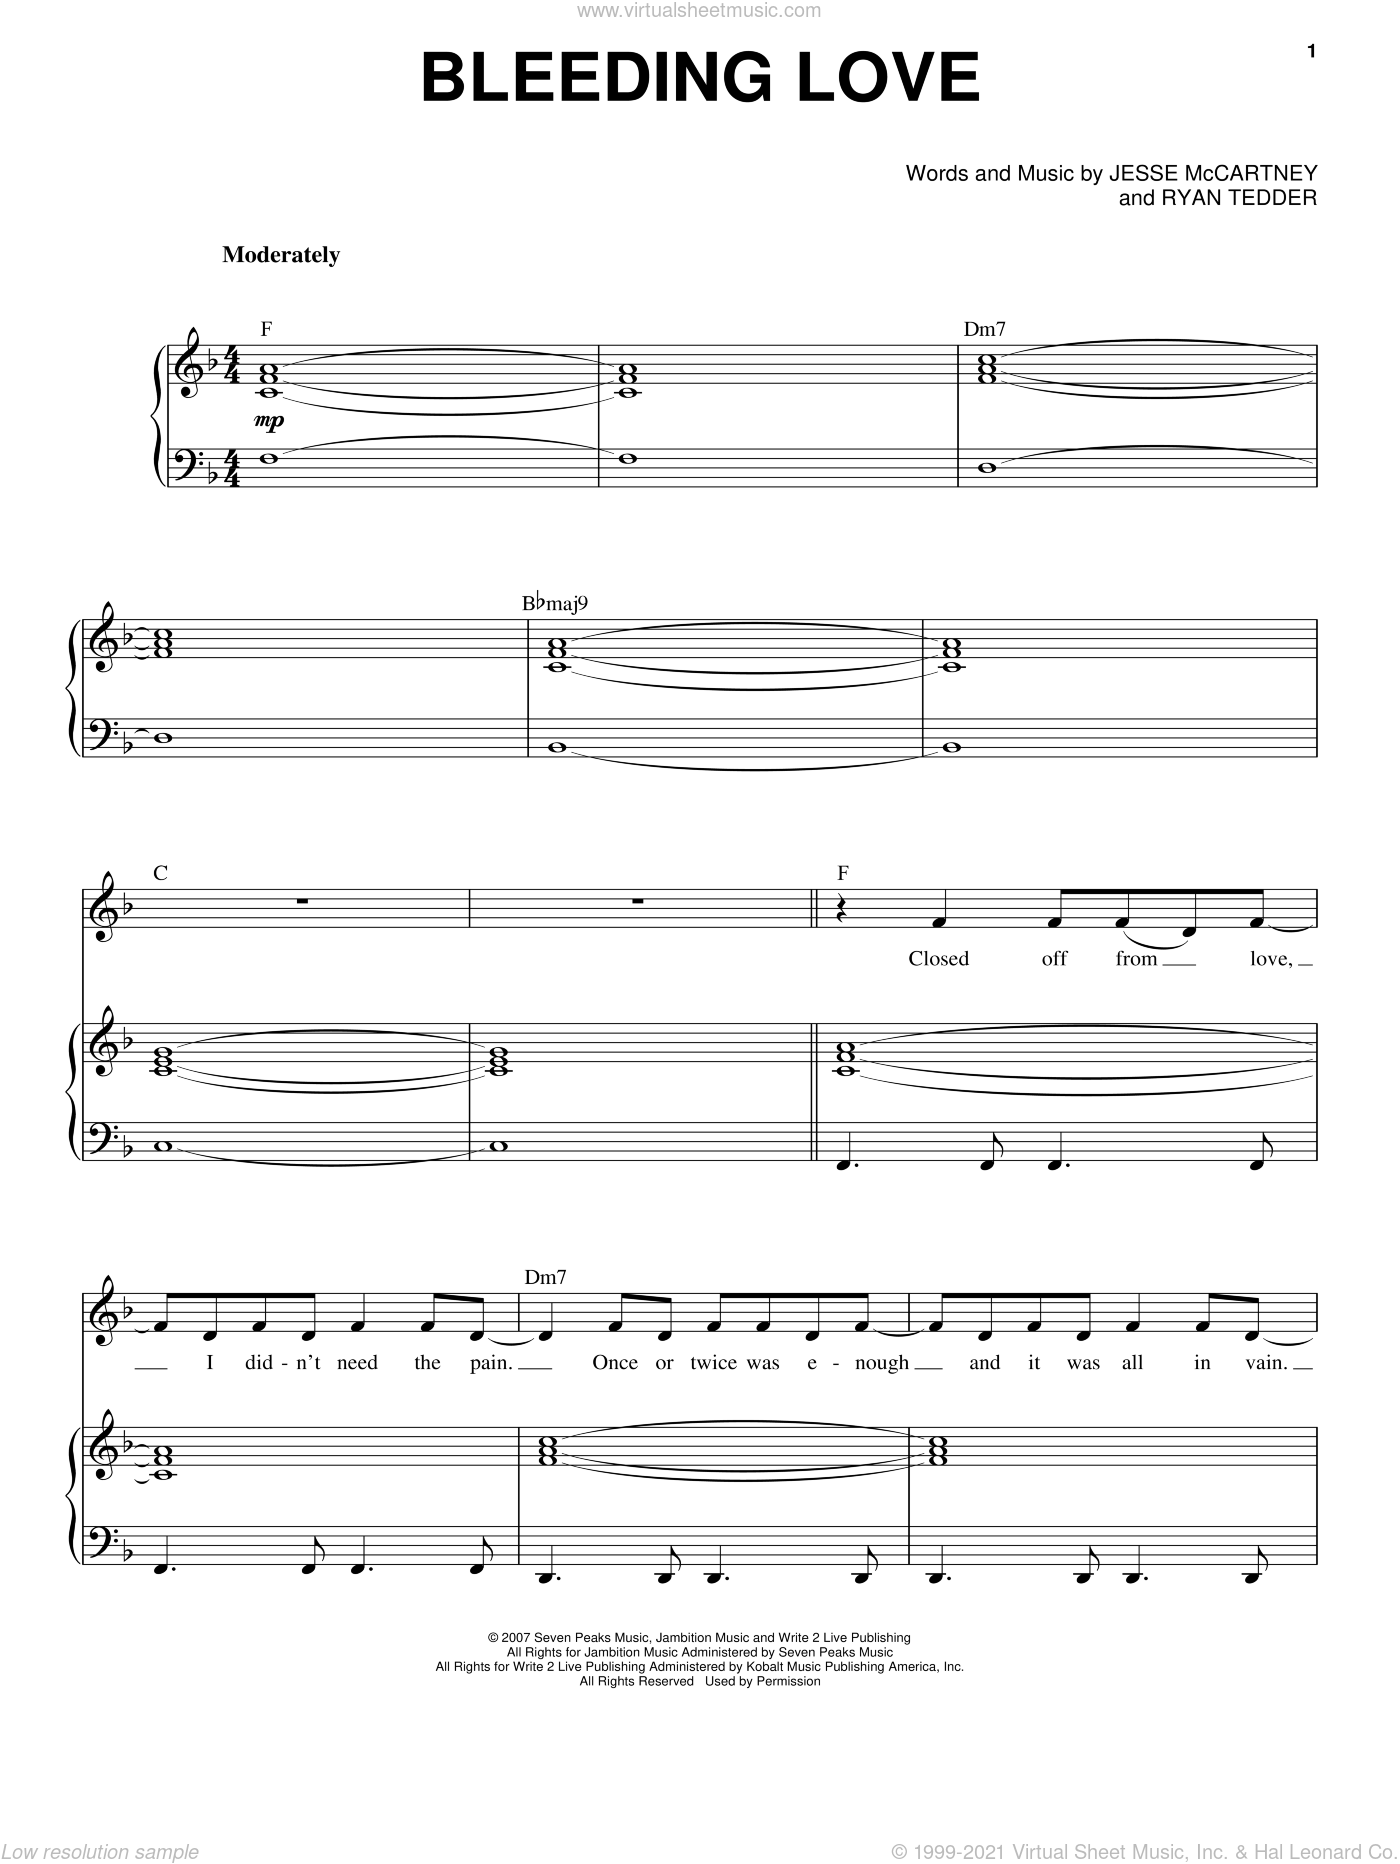 Bleeding Love sheet music for voice and piano by Ryan Tedder, Jesse McCartney and Leona Lewis. Score Image Preview.